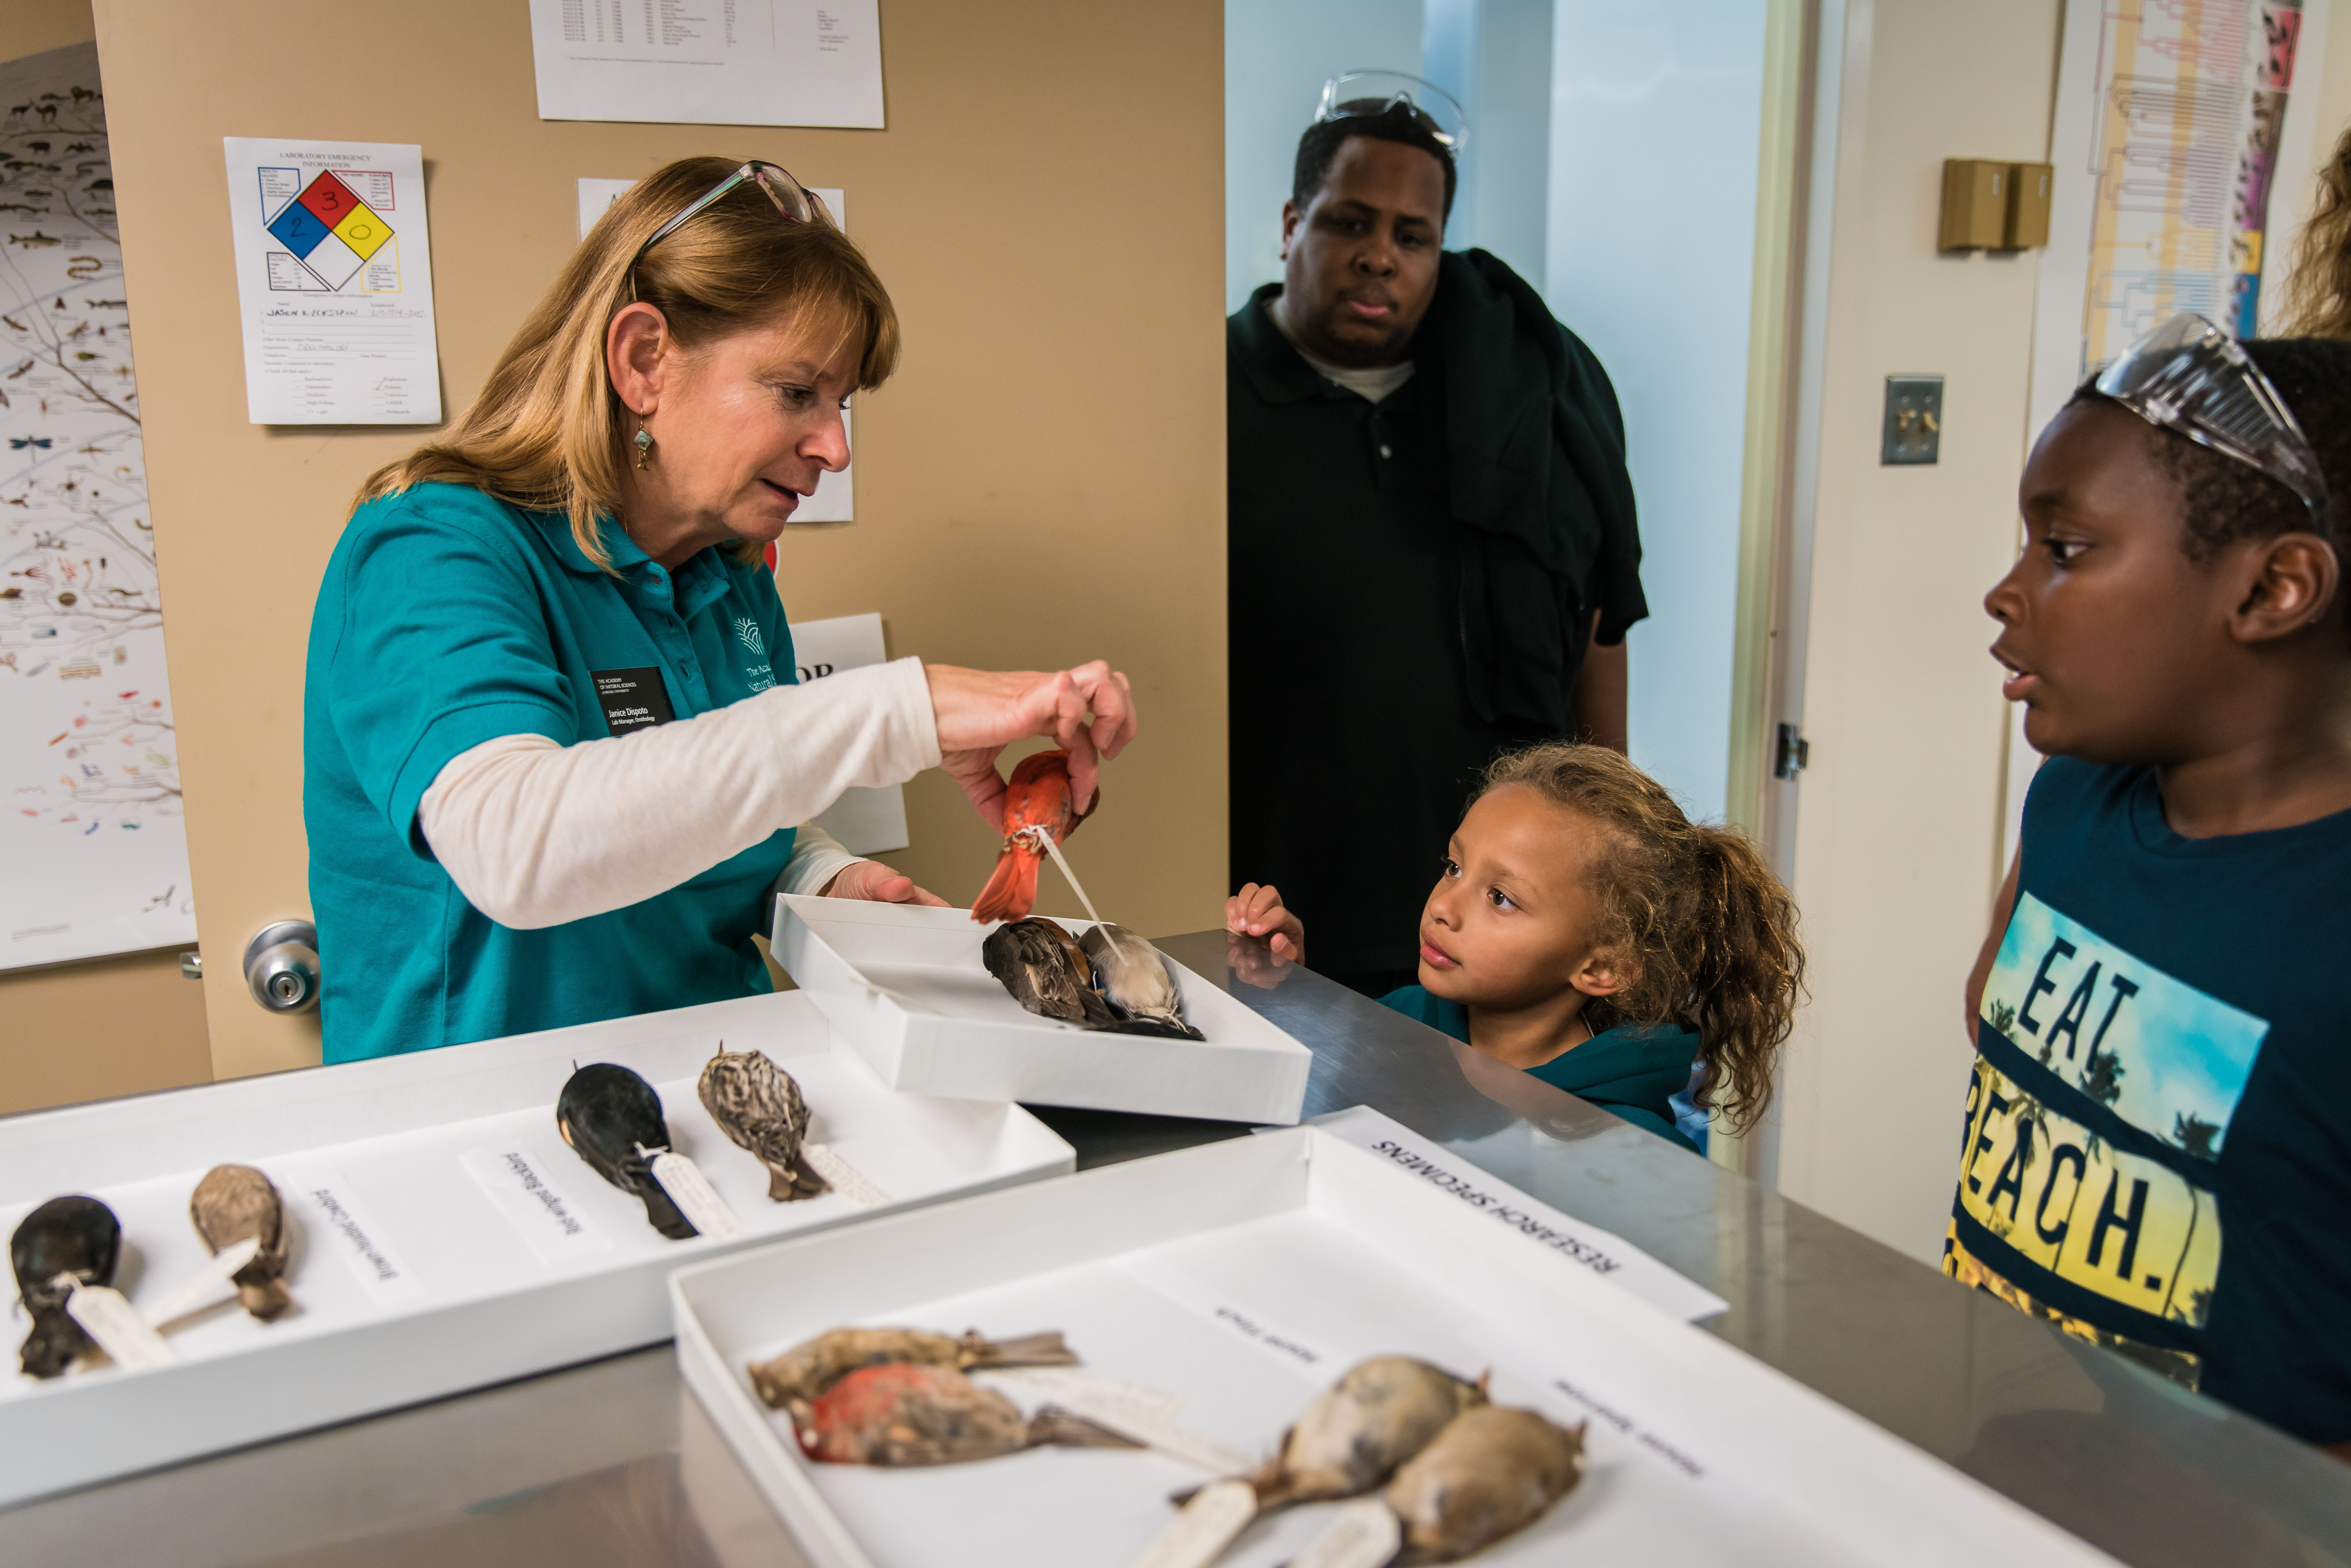 Kids learning how to I.D. bird specimens